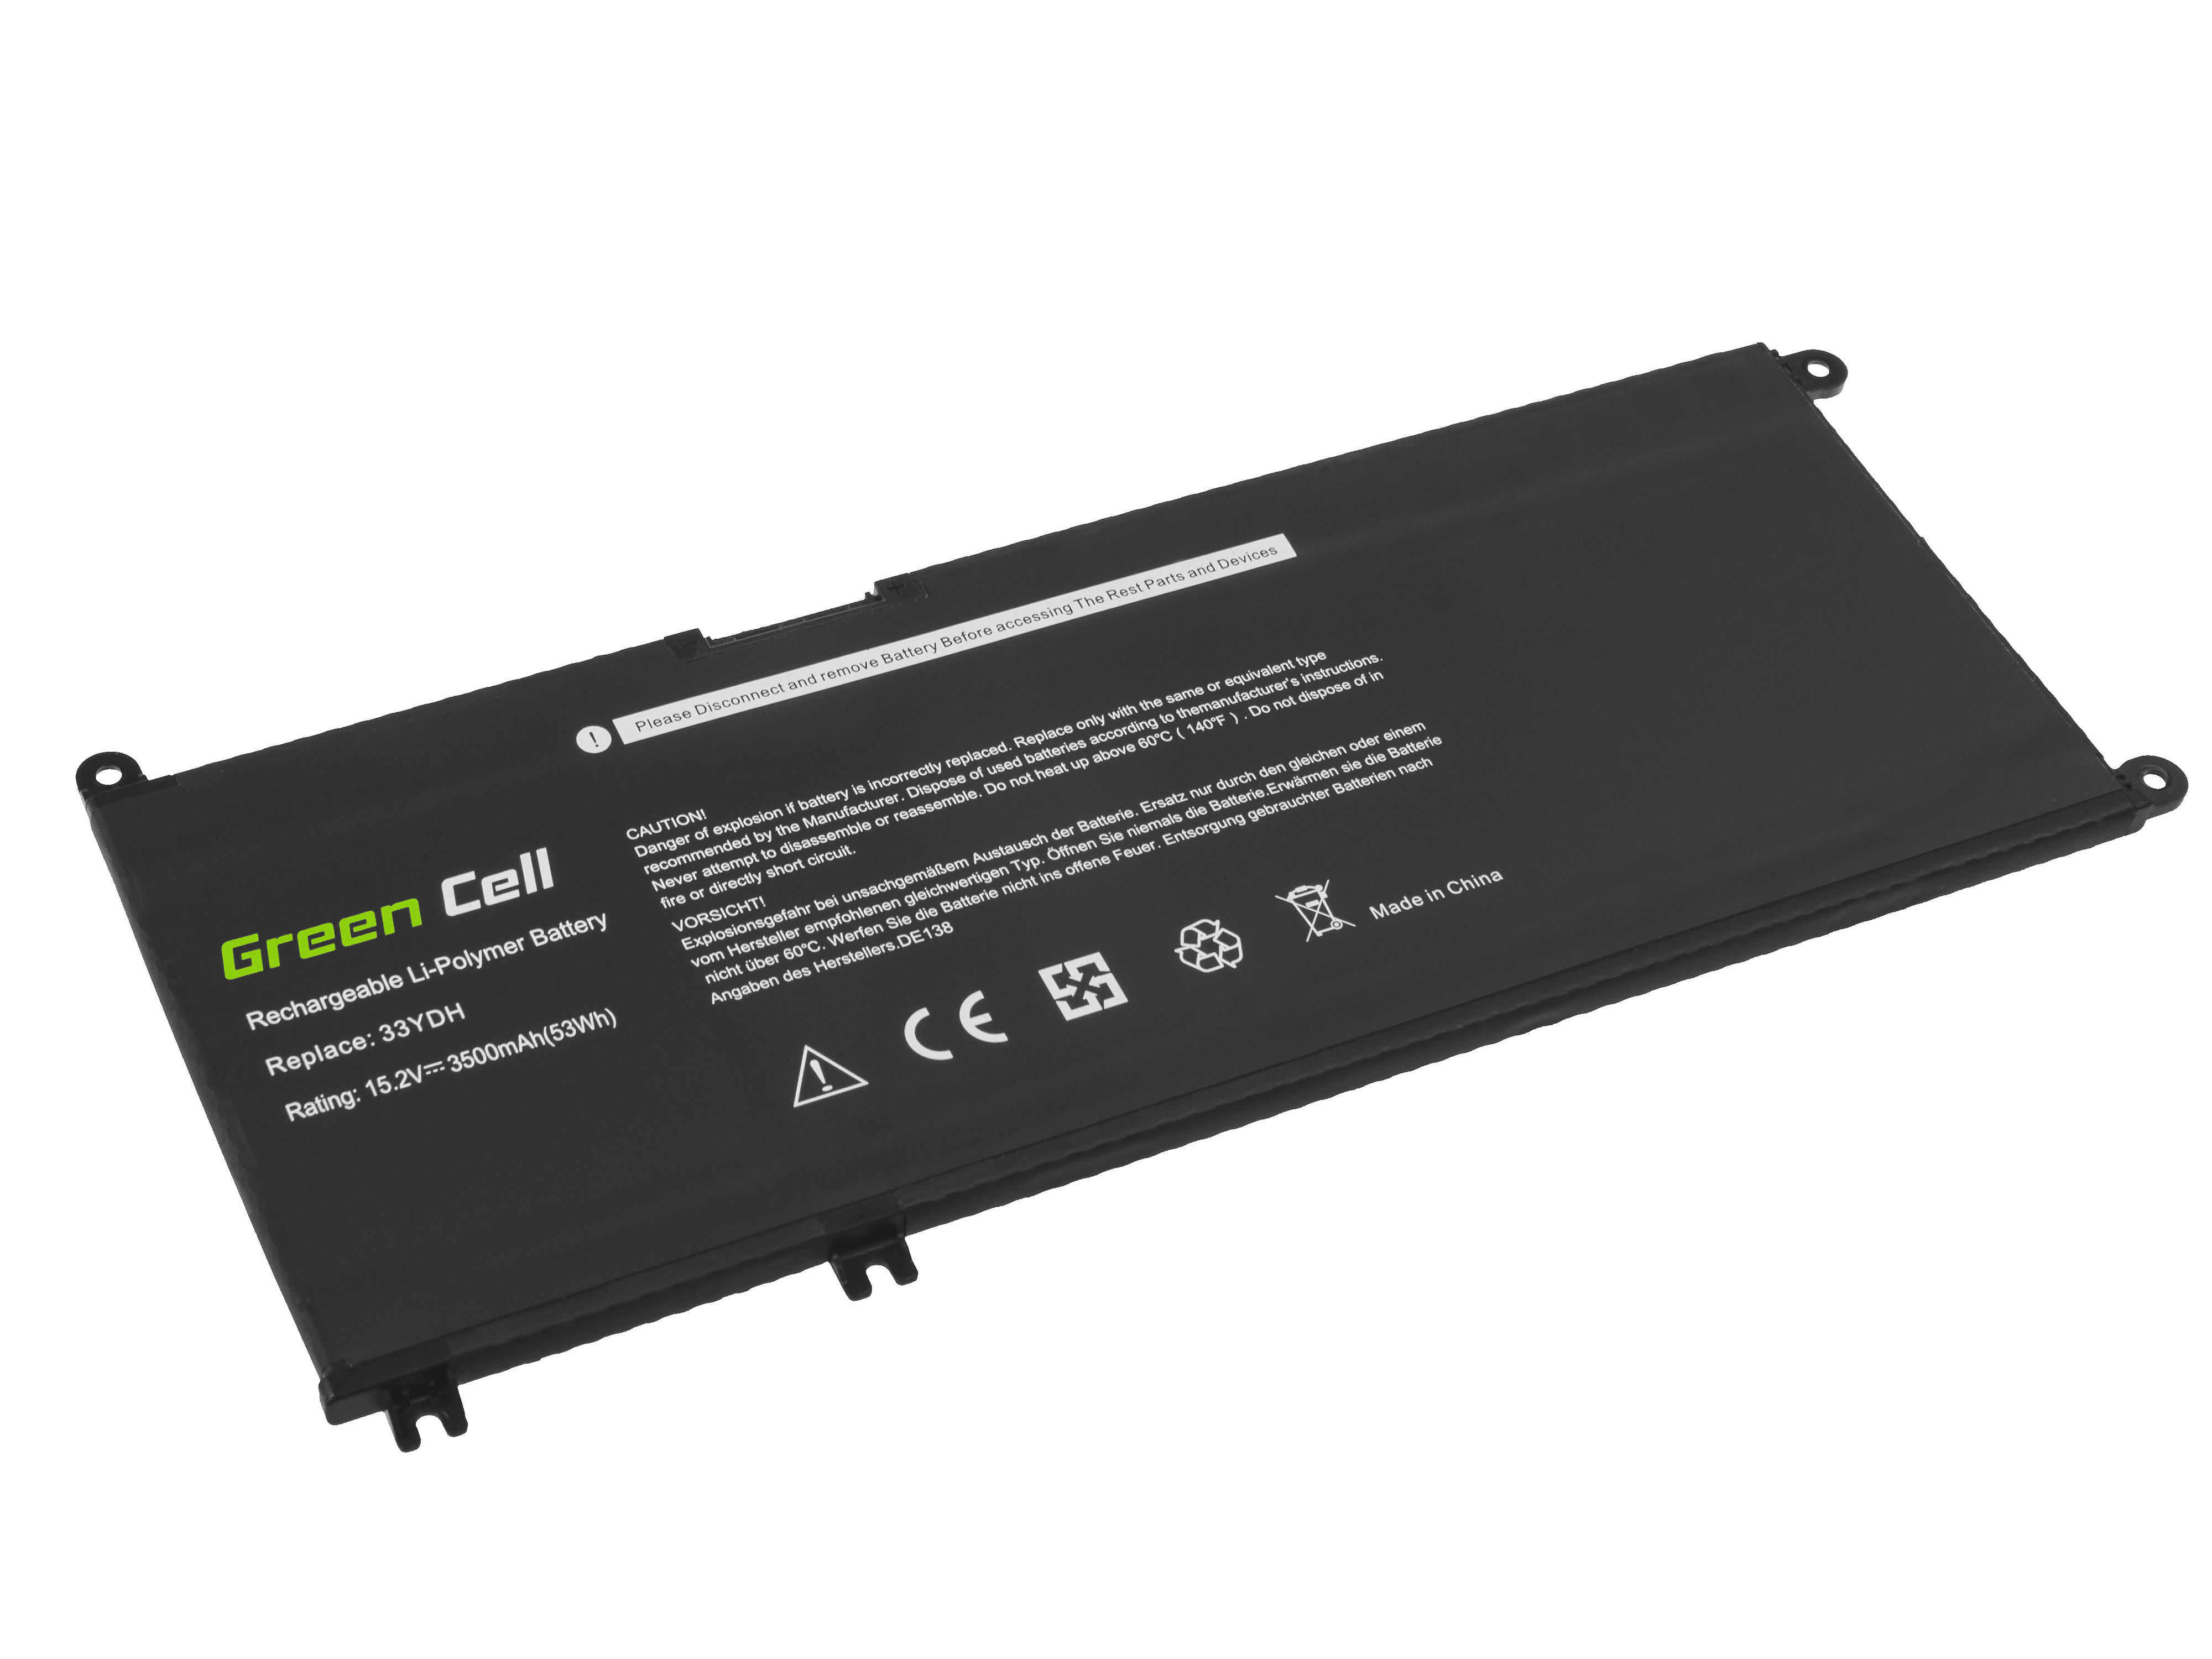 Green Cell Baterie 33YDH pro Dell Inspiron G3 3579 3779 G5 5587 G7 7588 7577 7773 7778 7779 7786 Latitude 3380 3480 3490 3590